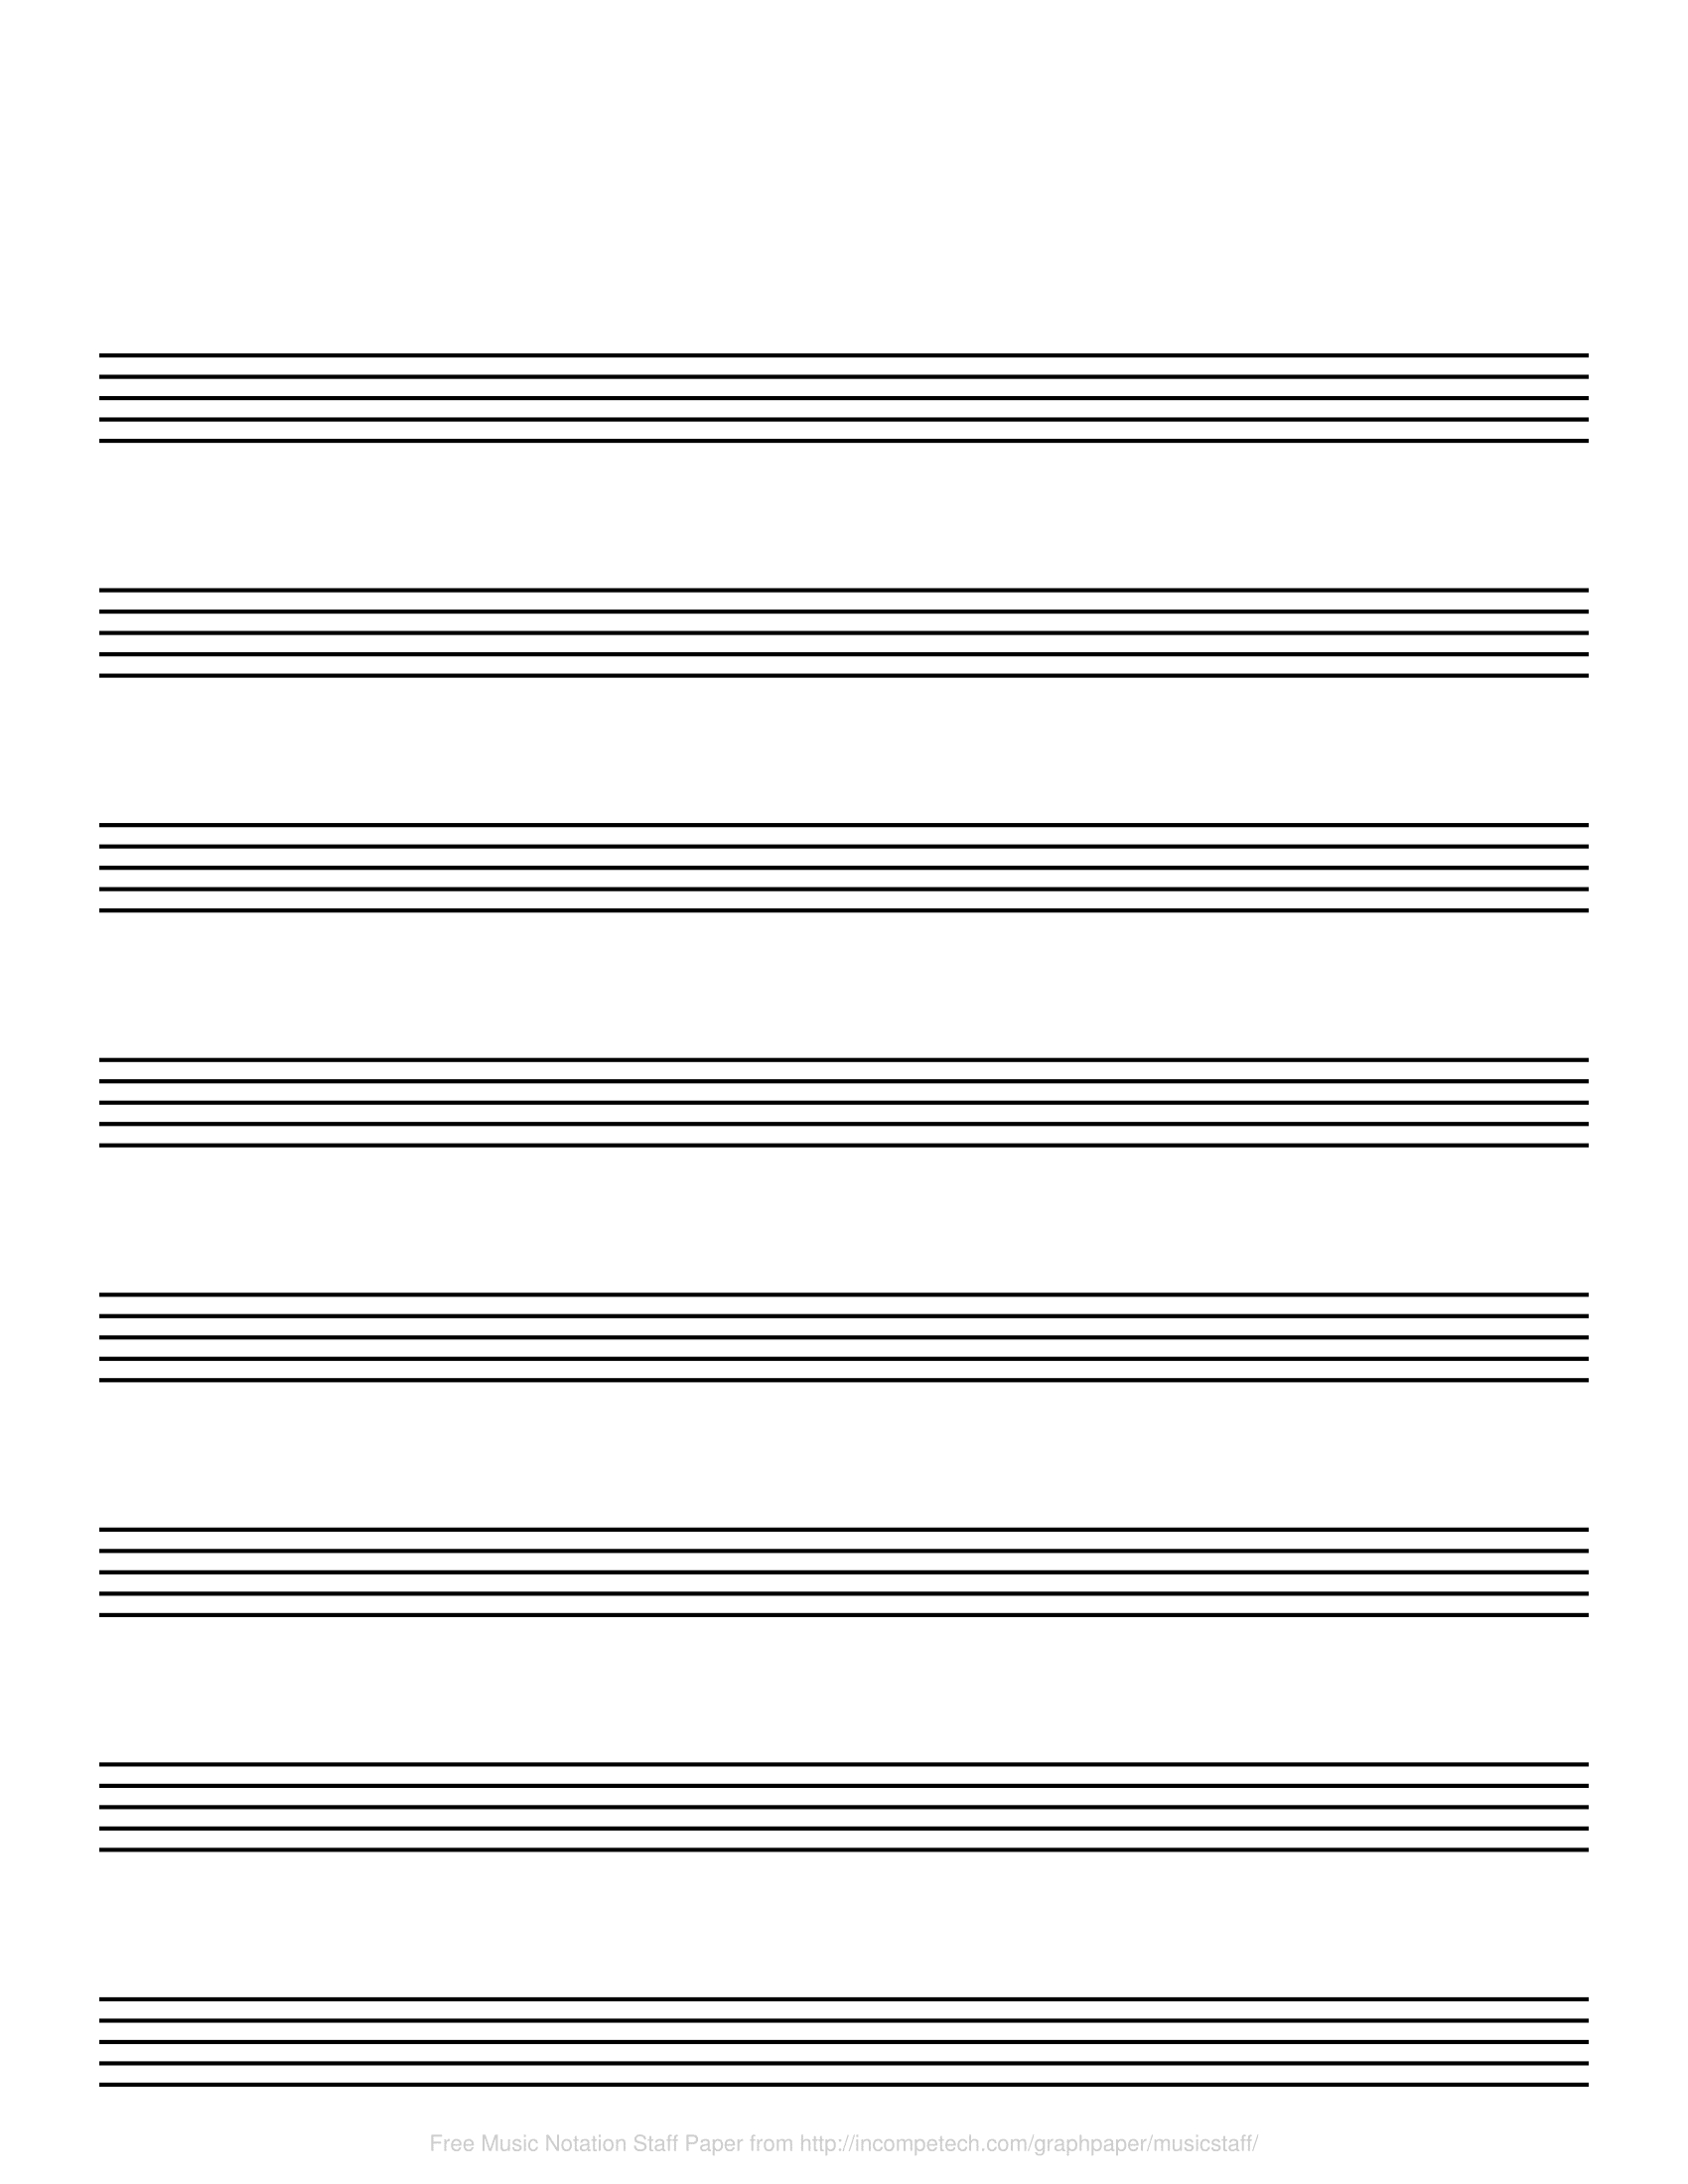 Free Online Graph Paper / Music Notation - Free Printable Staff Paper